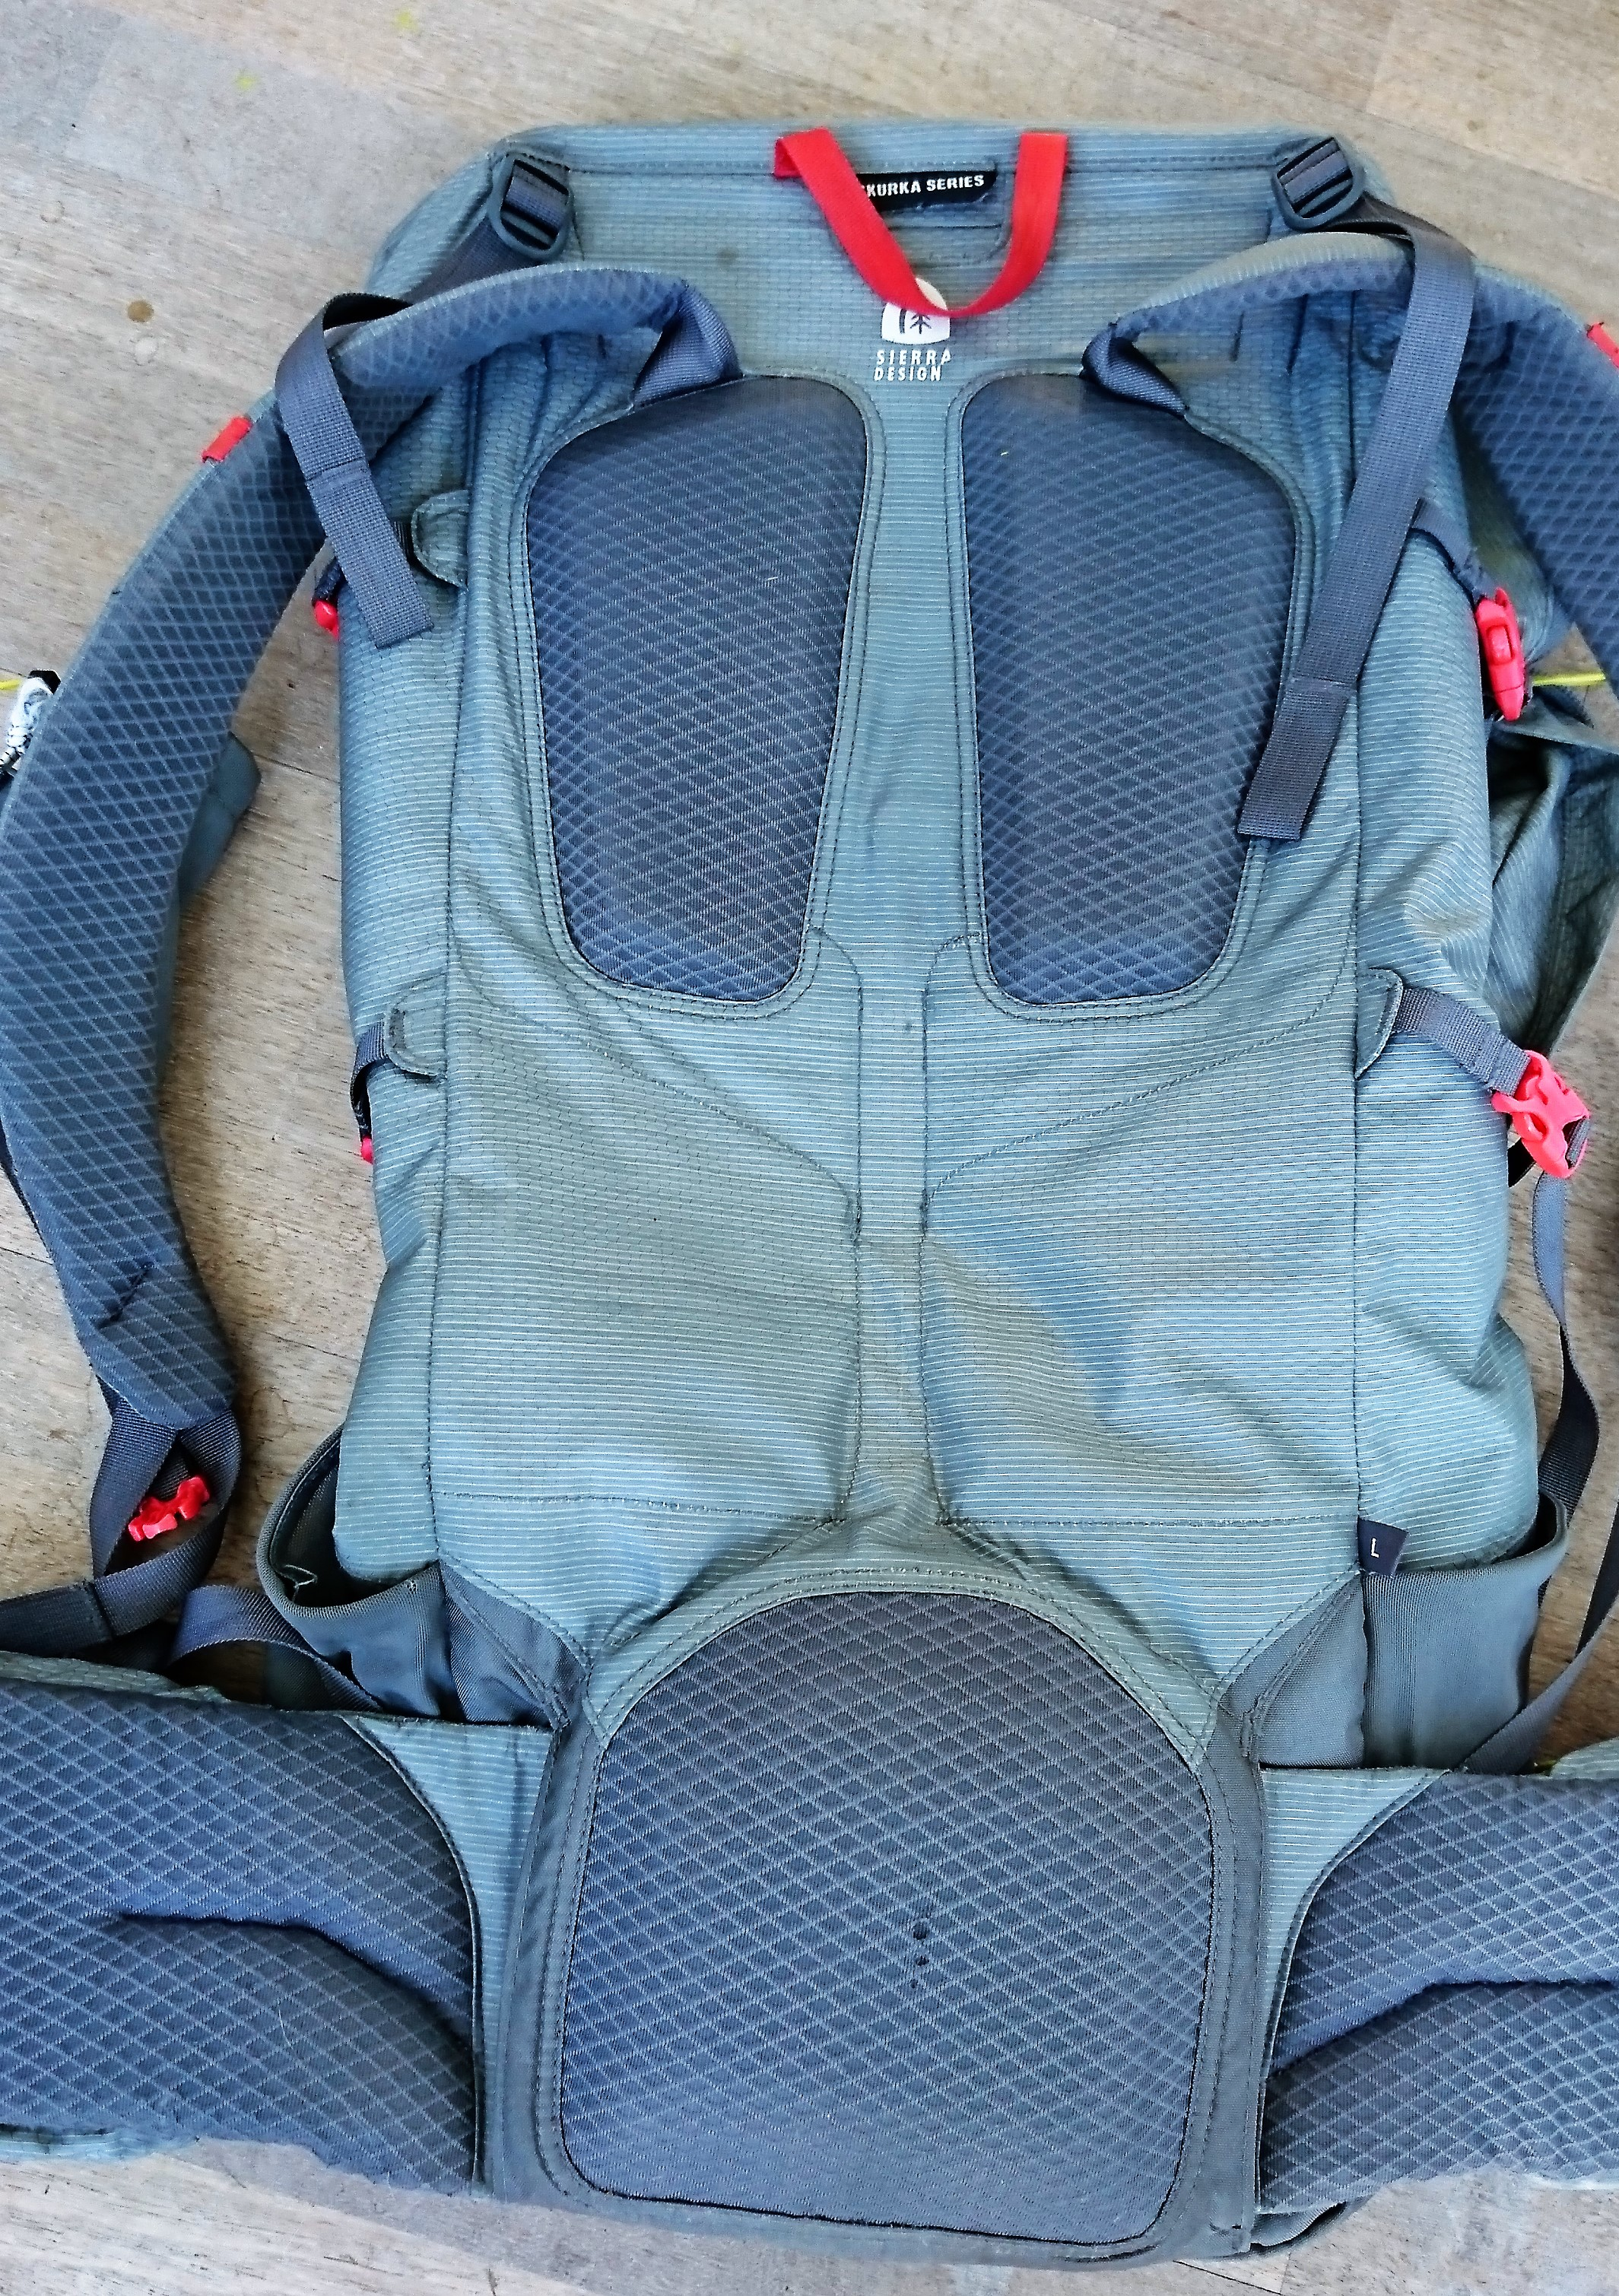 Sierra Designs Flex Capacitor Backpack Long Term Review